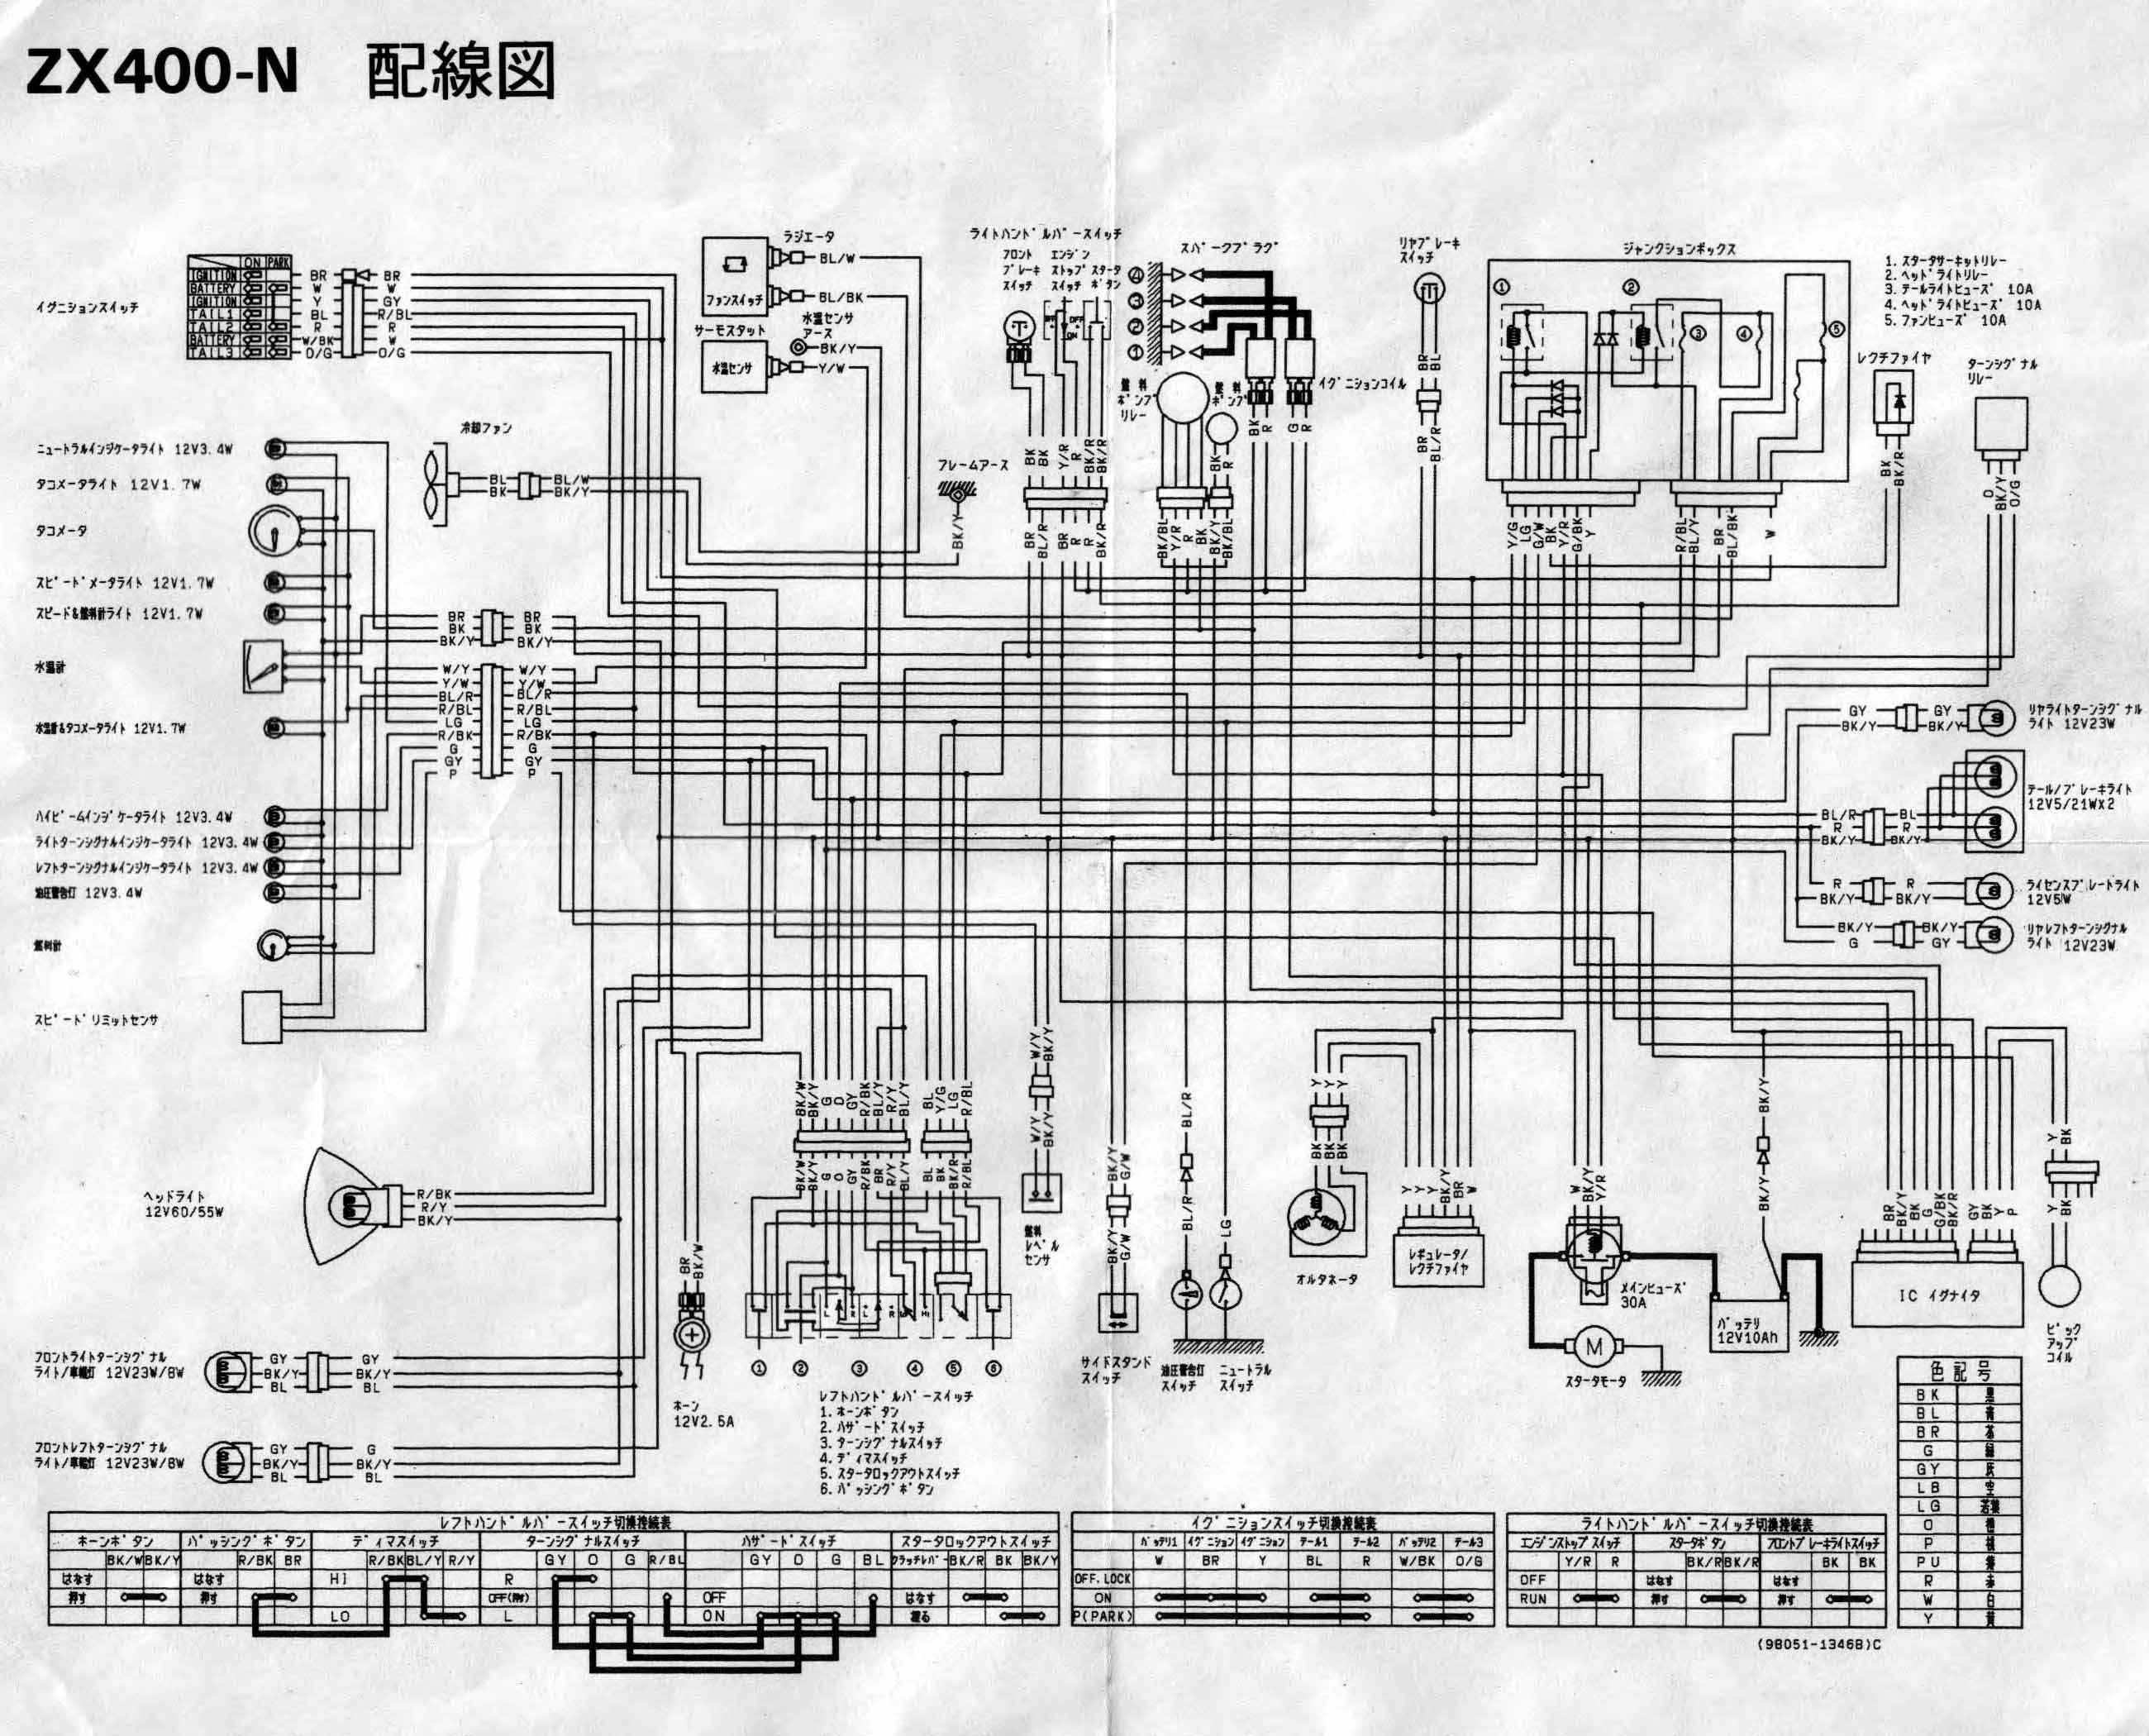 wiring diagram for 85 kawasaki ninja 6 wiring diagramex500 wiring diagram wiring diagram wiring diagram for 85 kawasaki ninja